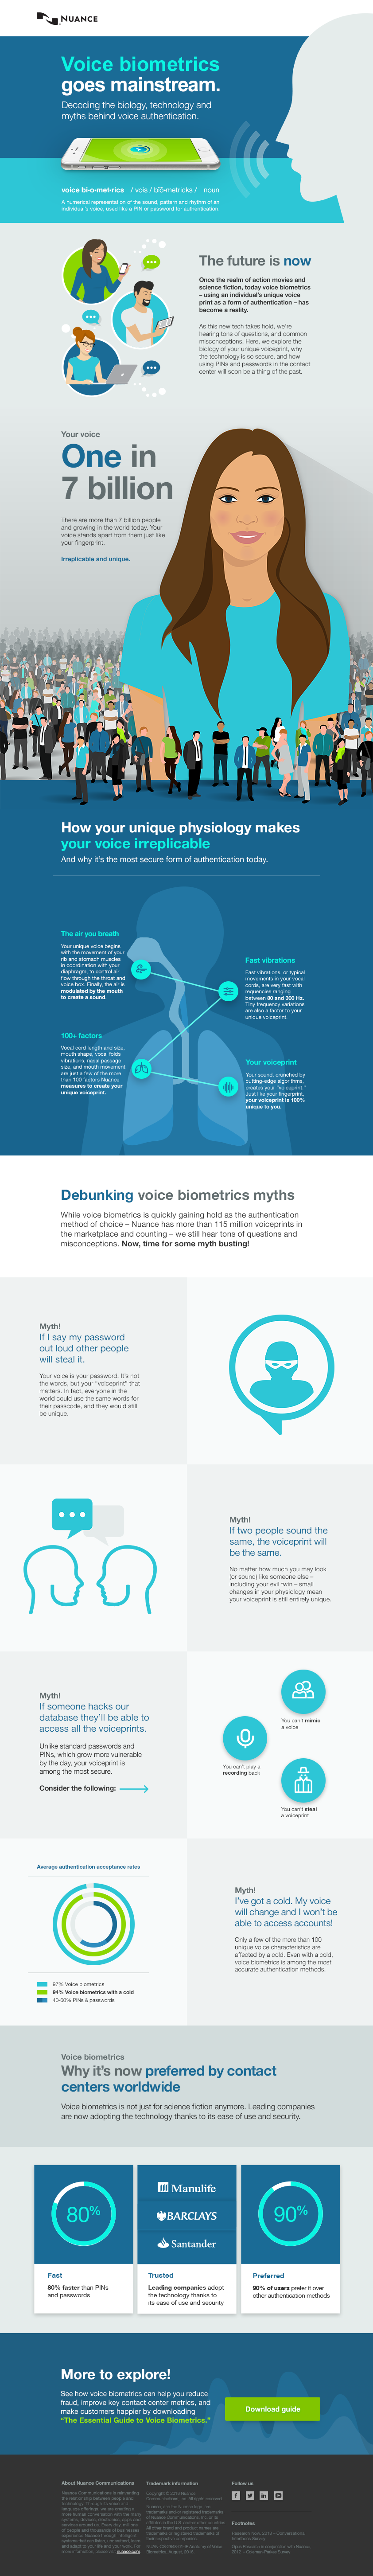 Voice Biometrics Goes Mainstream